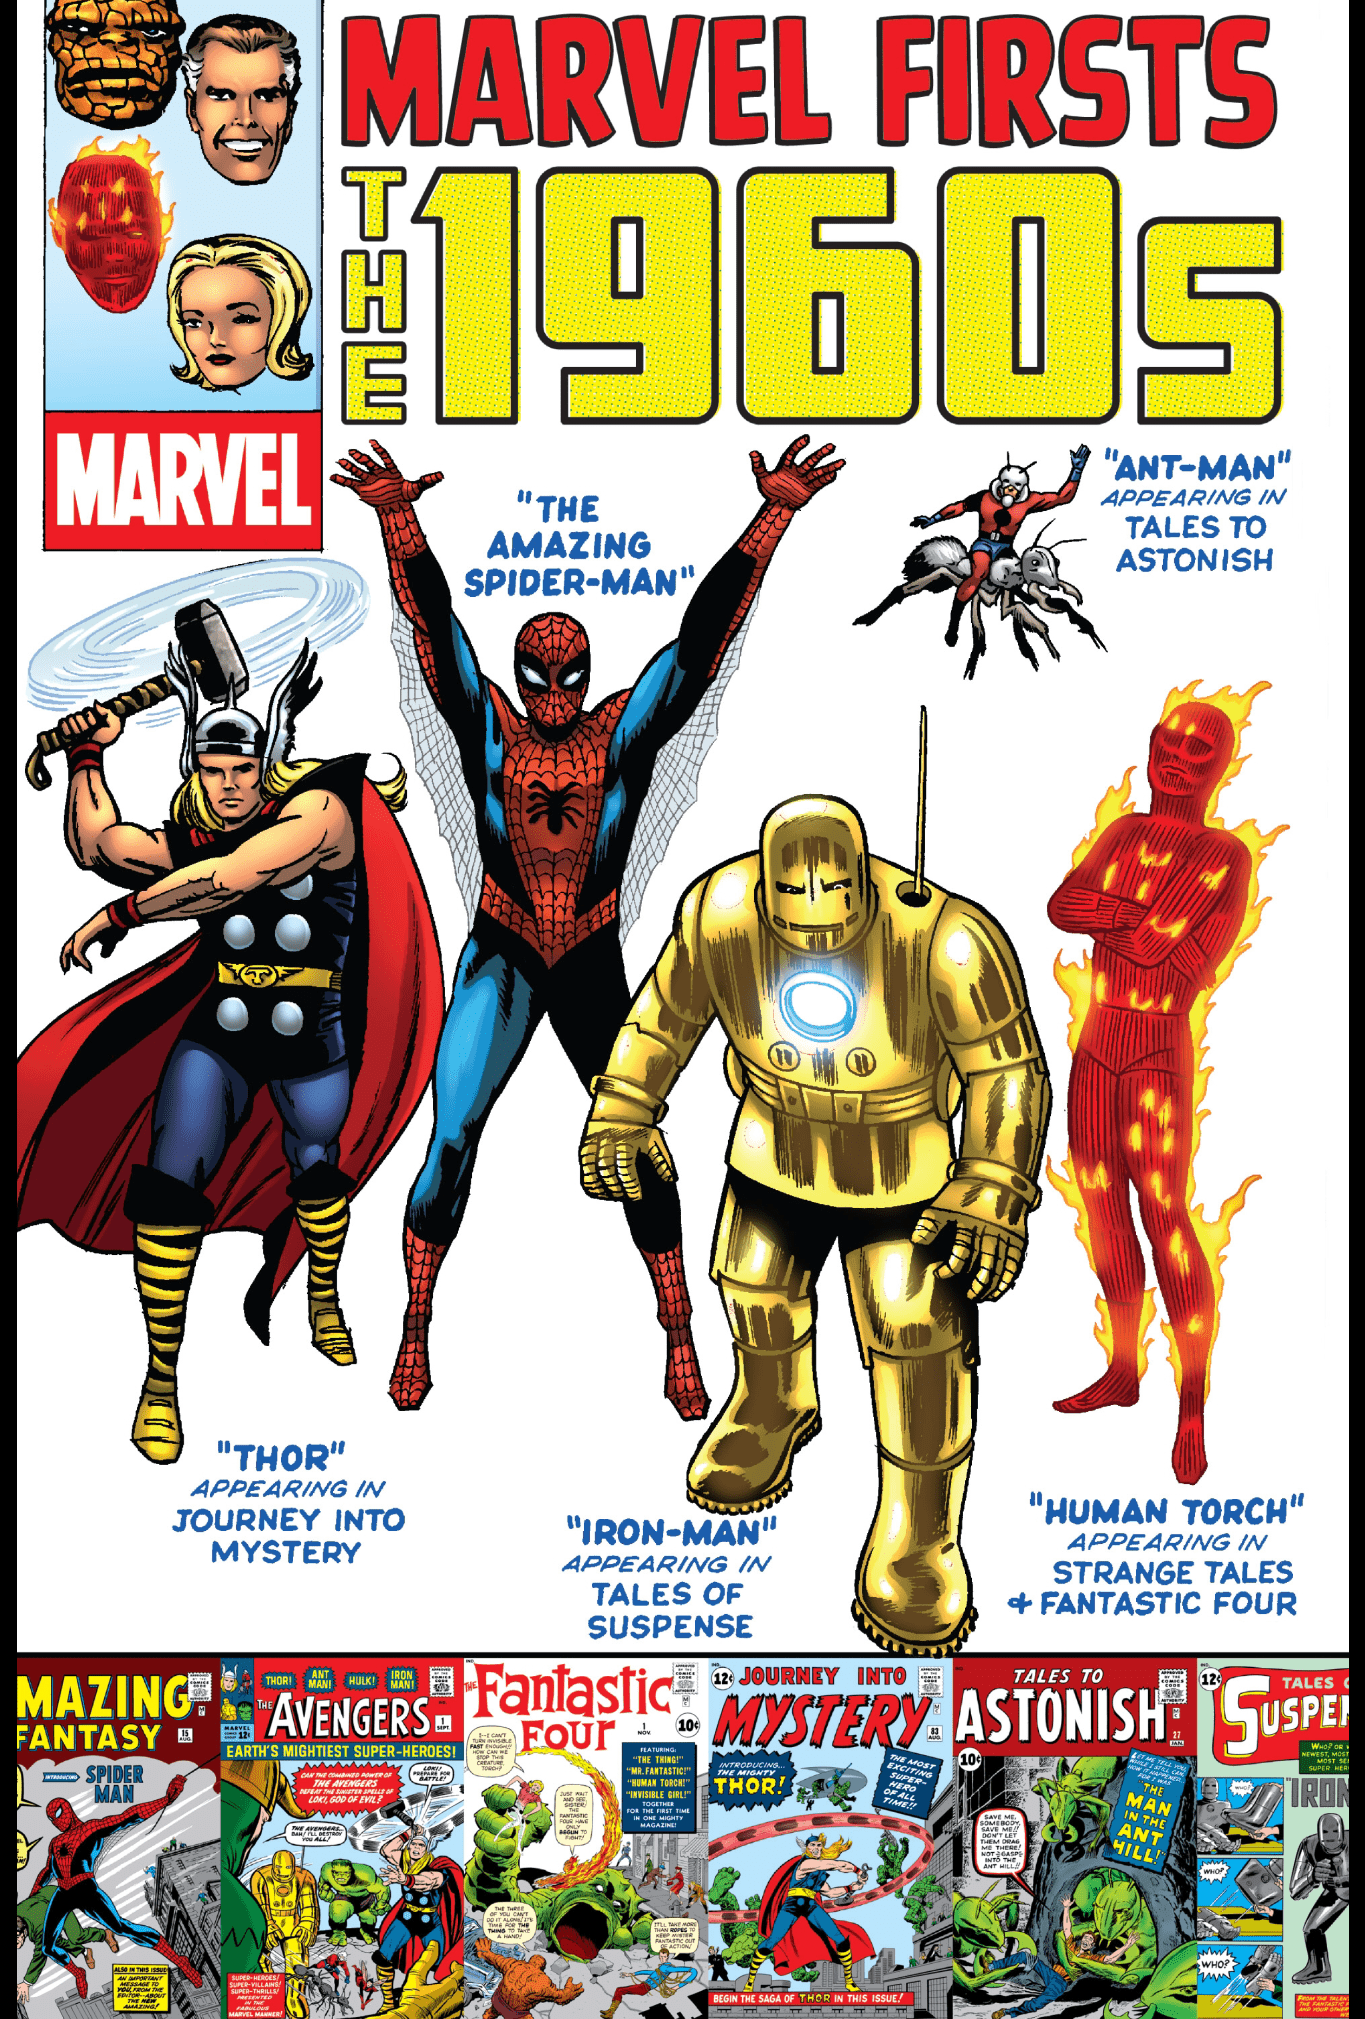 Marvel Firsts - The 1960s